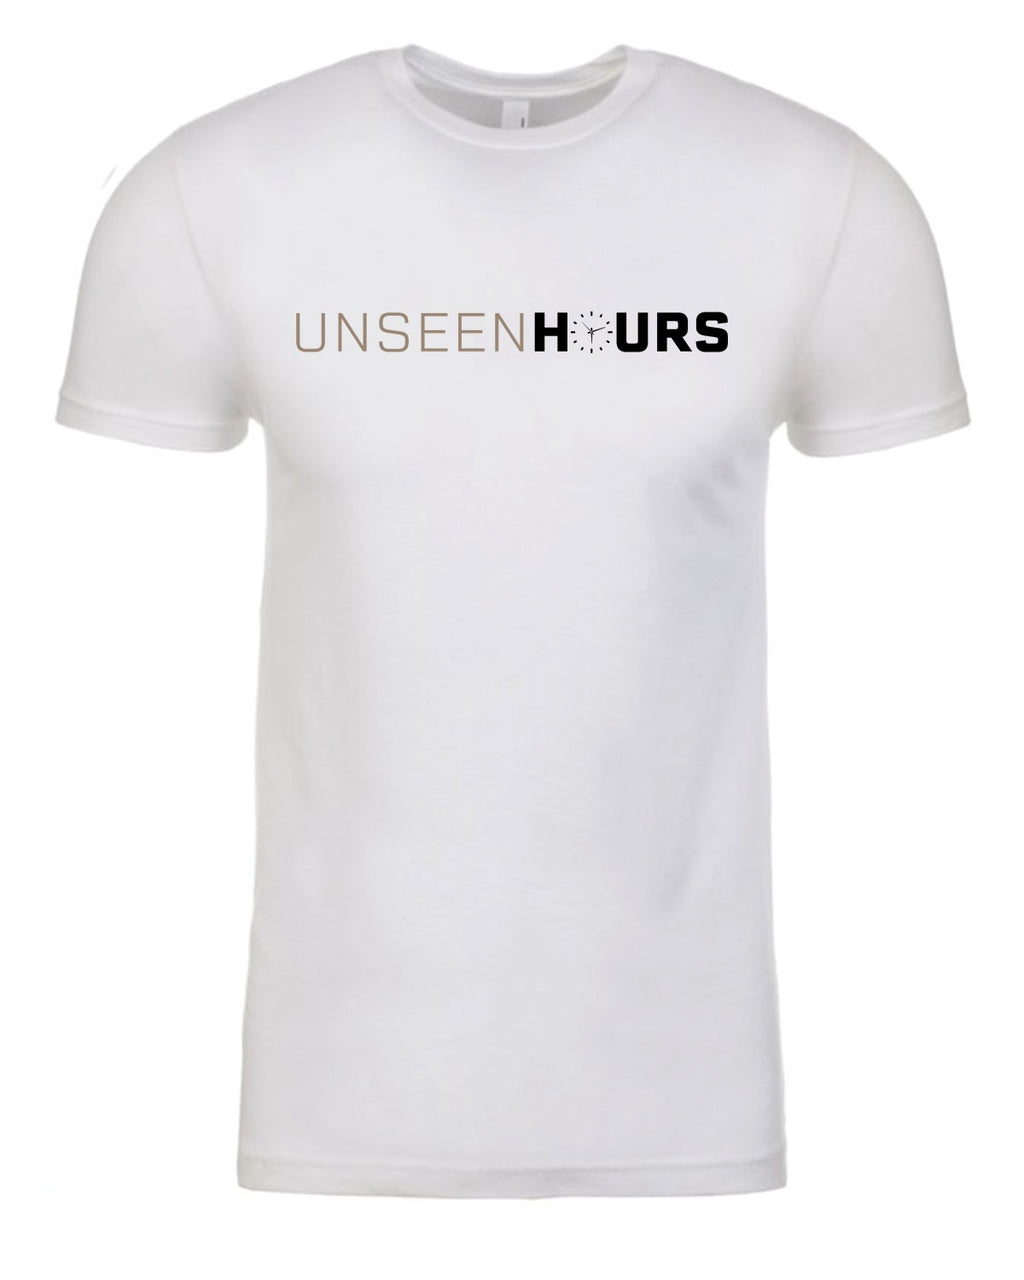 The Classic Unseen Hours T-Shirt